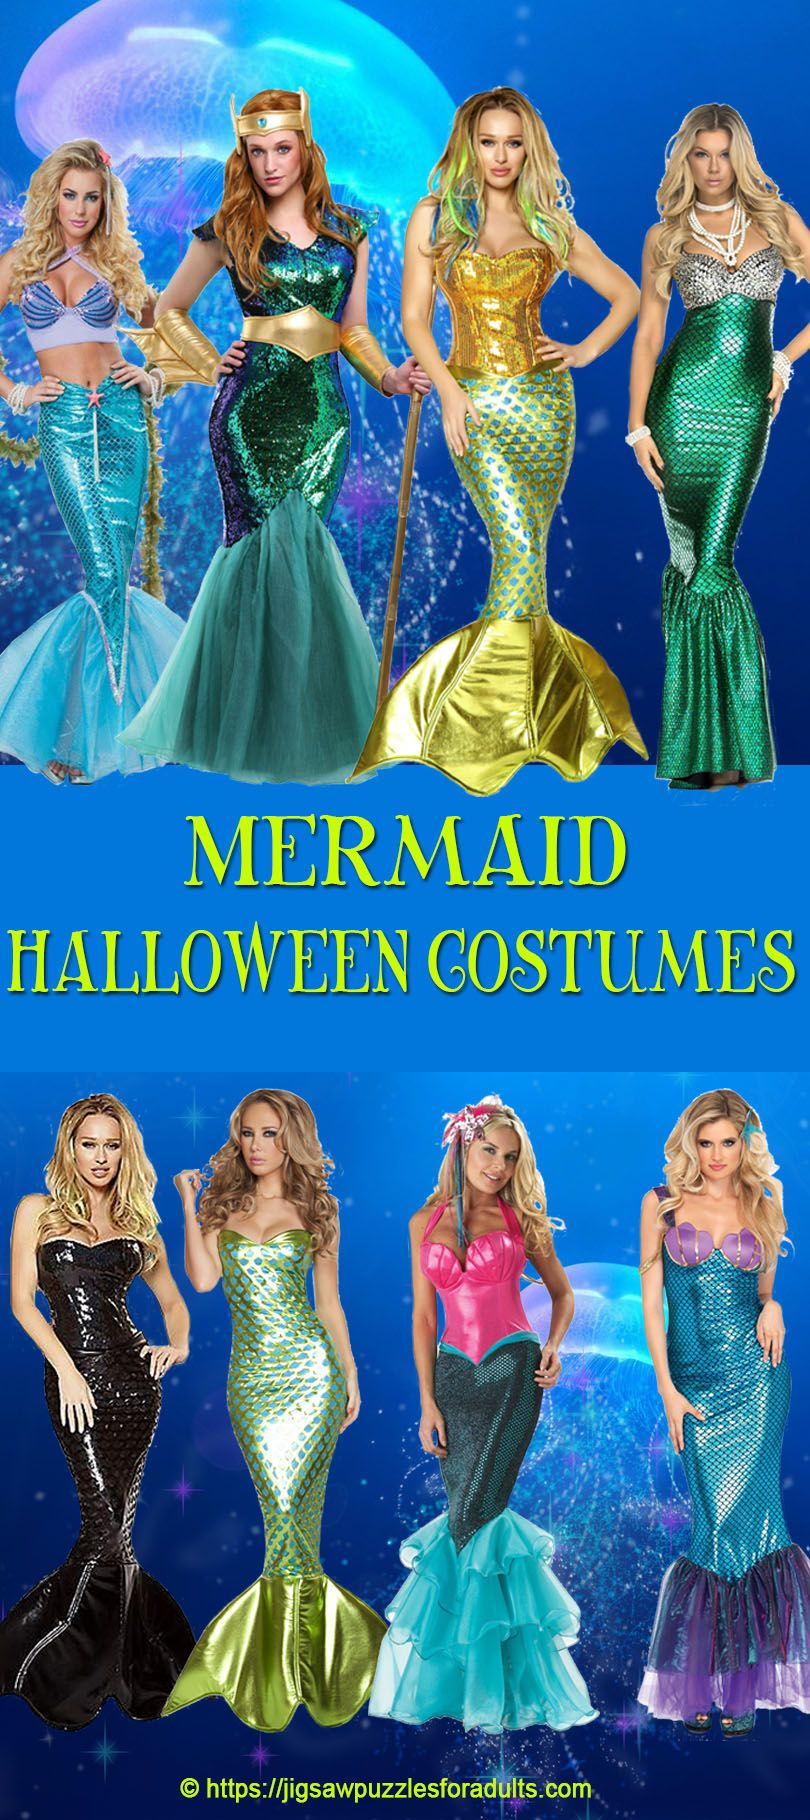 Mermaid Halloween Costumes For Women Mermaid halloween